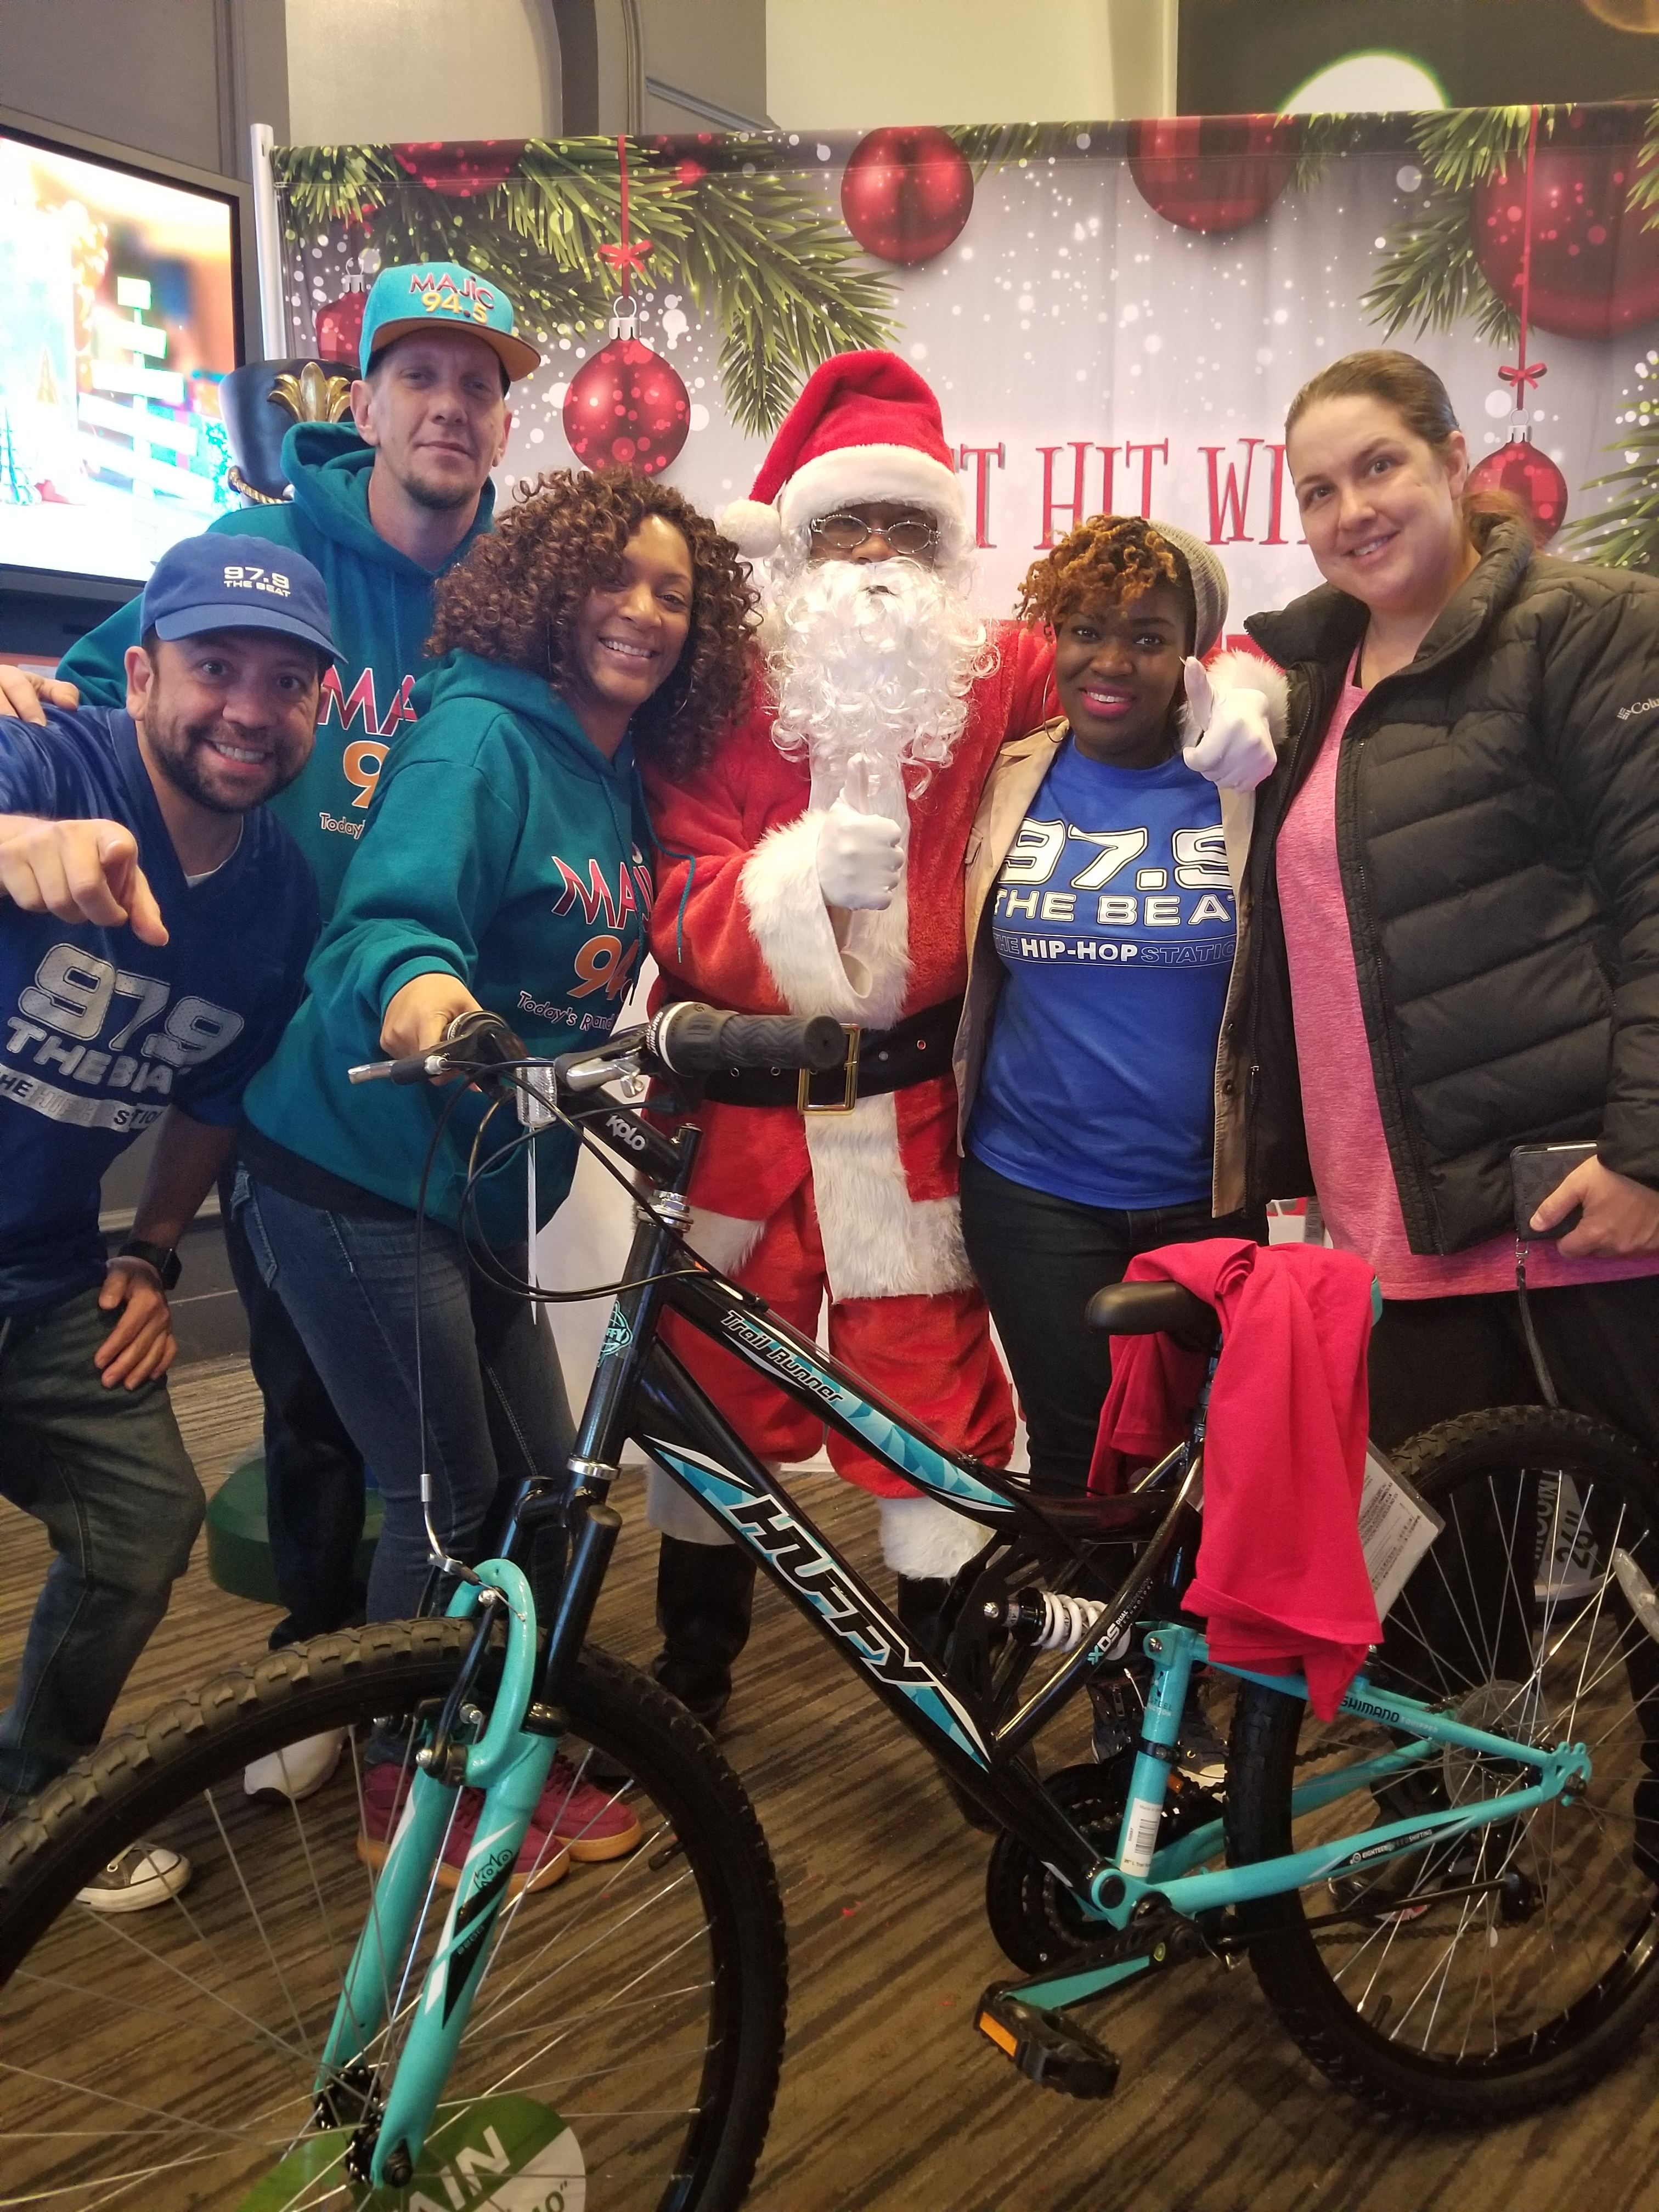 IJustGotHit.com Bike Giveaway 2018 At Dave & Busters (PHOTOS)